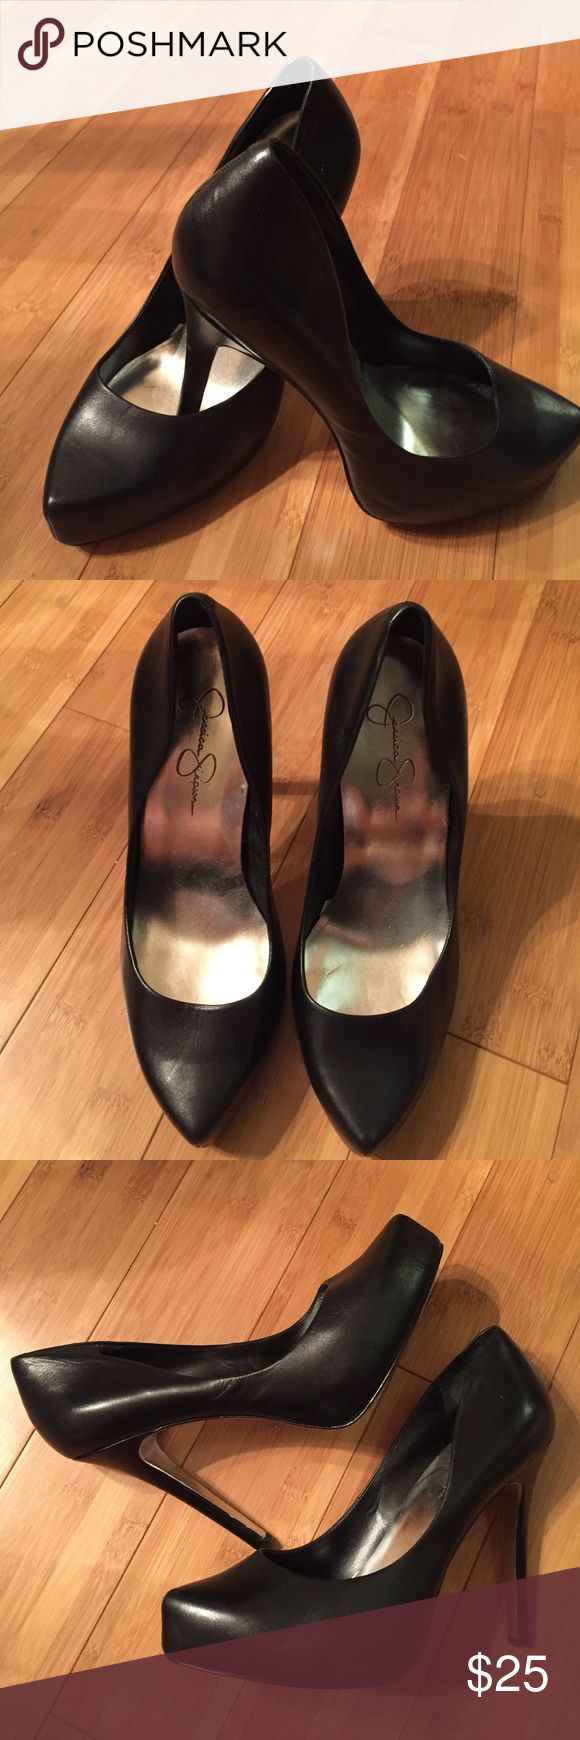 Jessica Simpson Black Pumps - Size 10 Jessica Simpson Black Heel - Size 10! In great condition, only been worn a few times! Jessica Simpson Shoes Heels